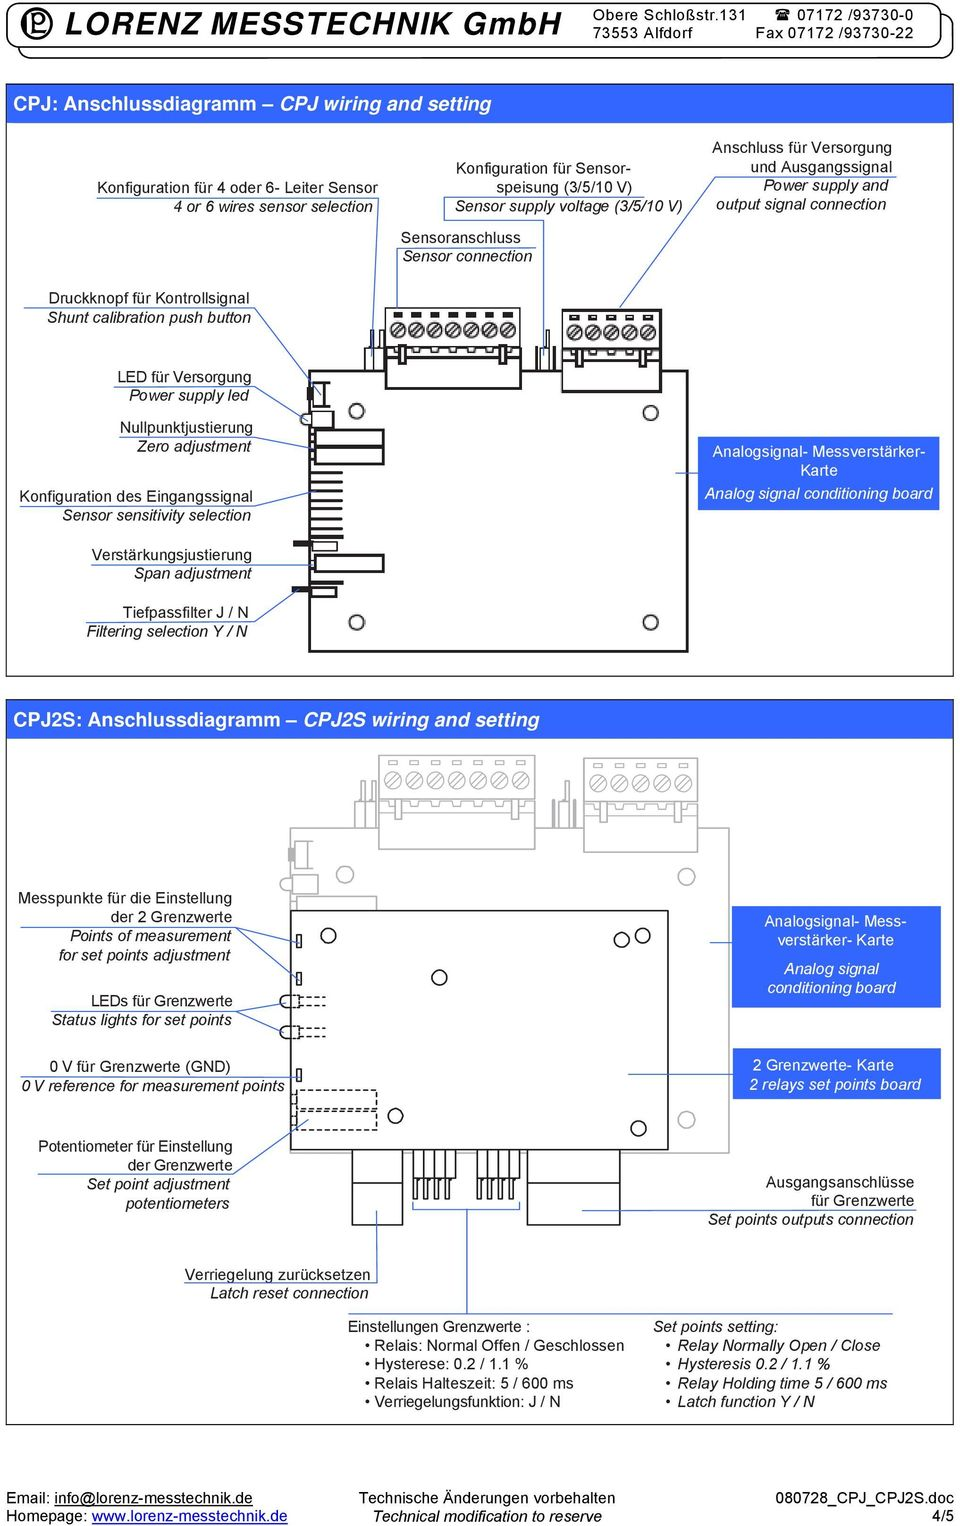 Power supply led Nullpunktjustierung Zero adjustment Konfiguration des Eingangssignal Sensor sensitivity selection Analogsignal- Messverstärker- Karte Analog signal conditioning board